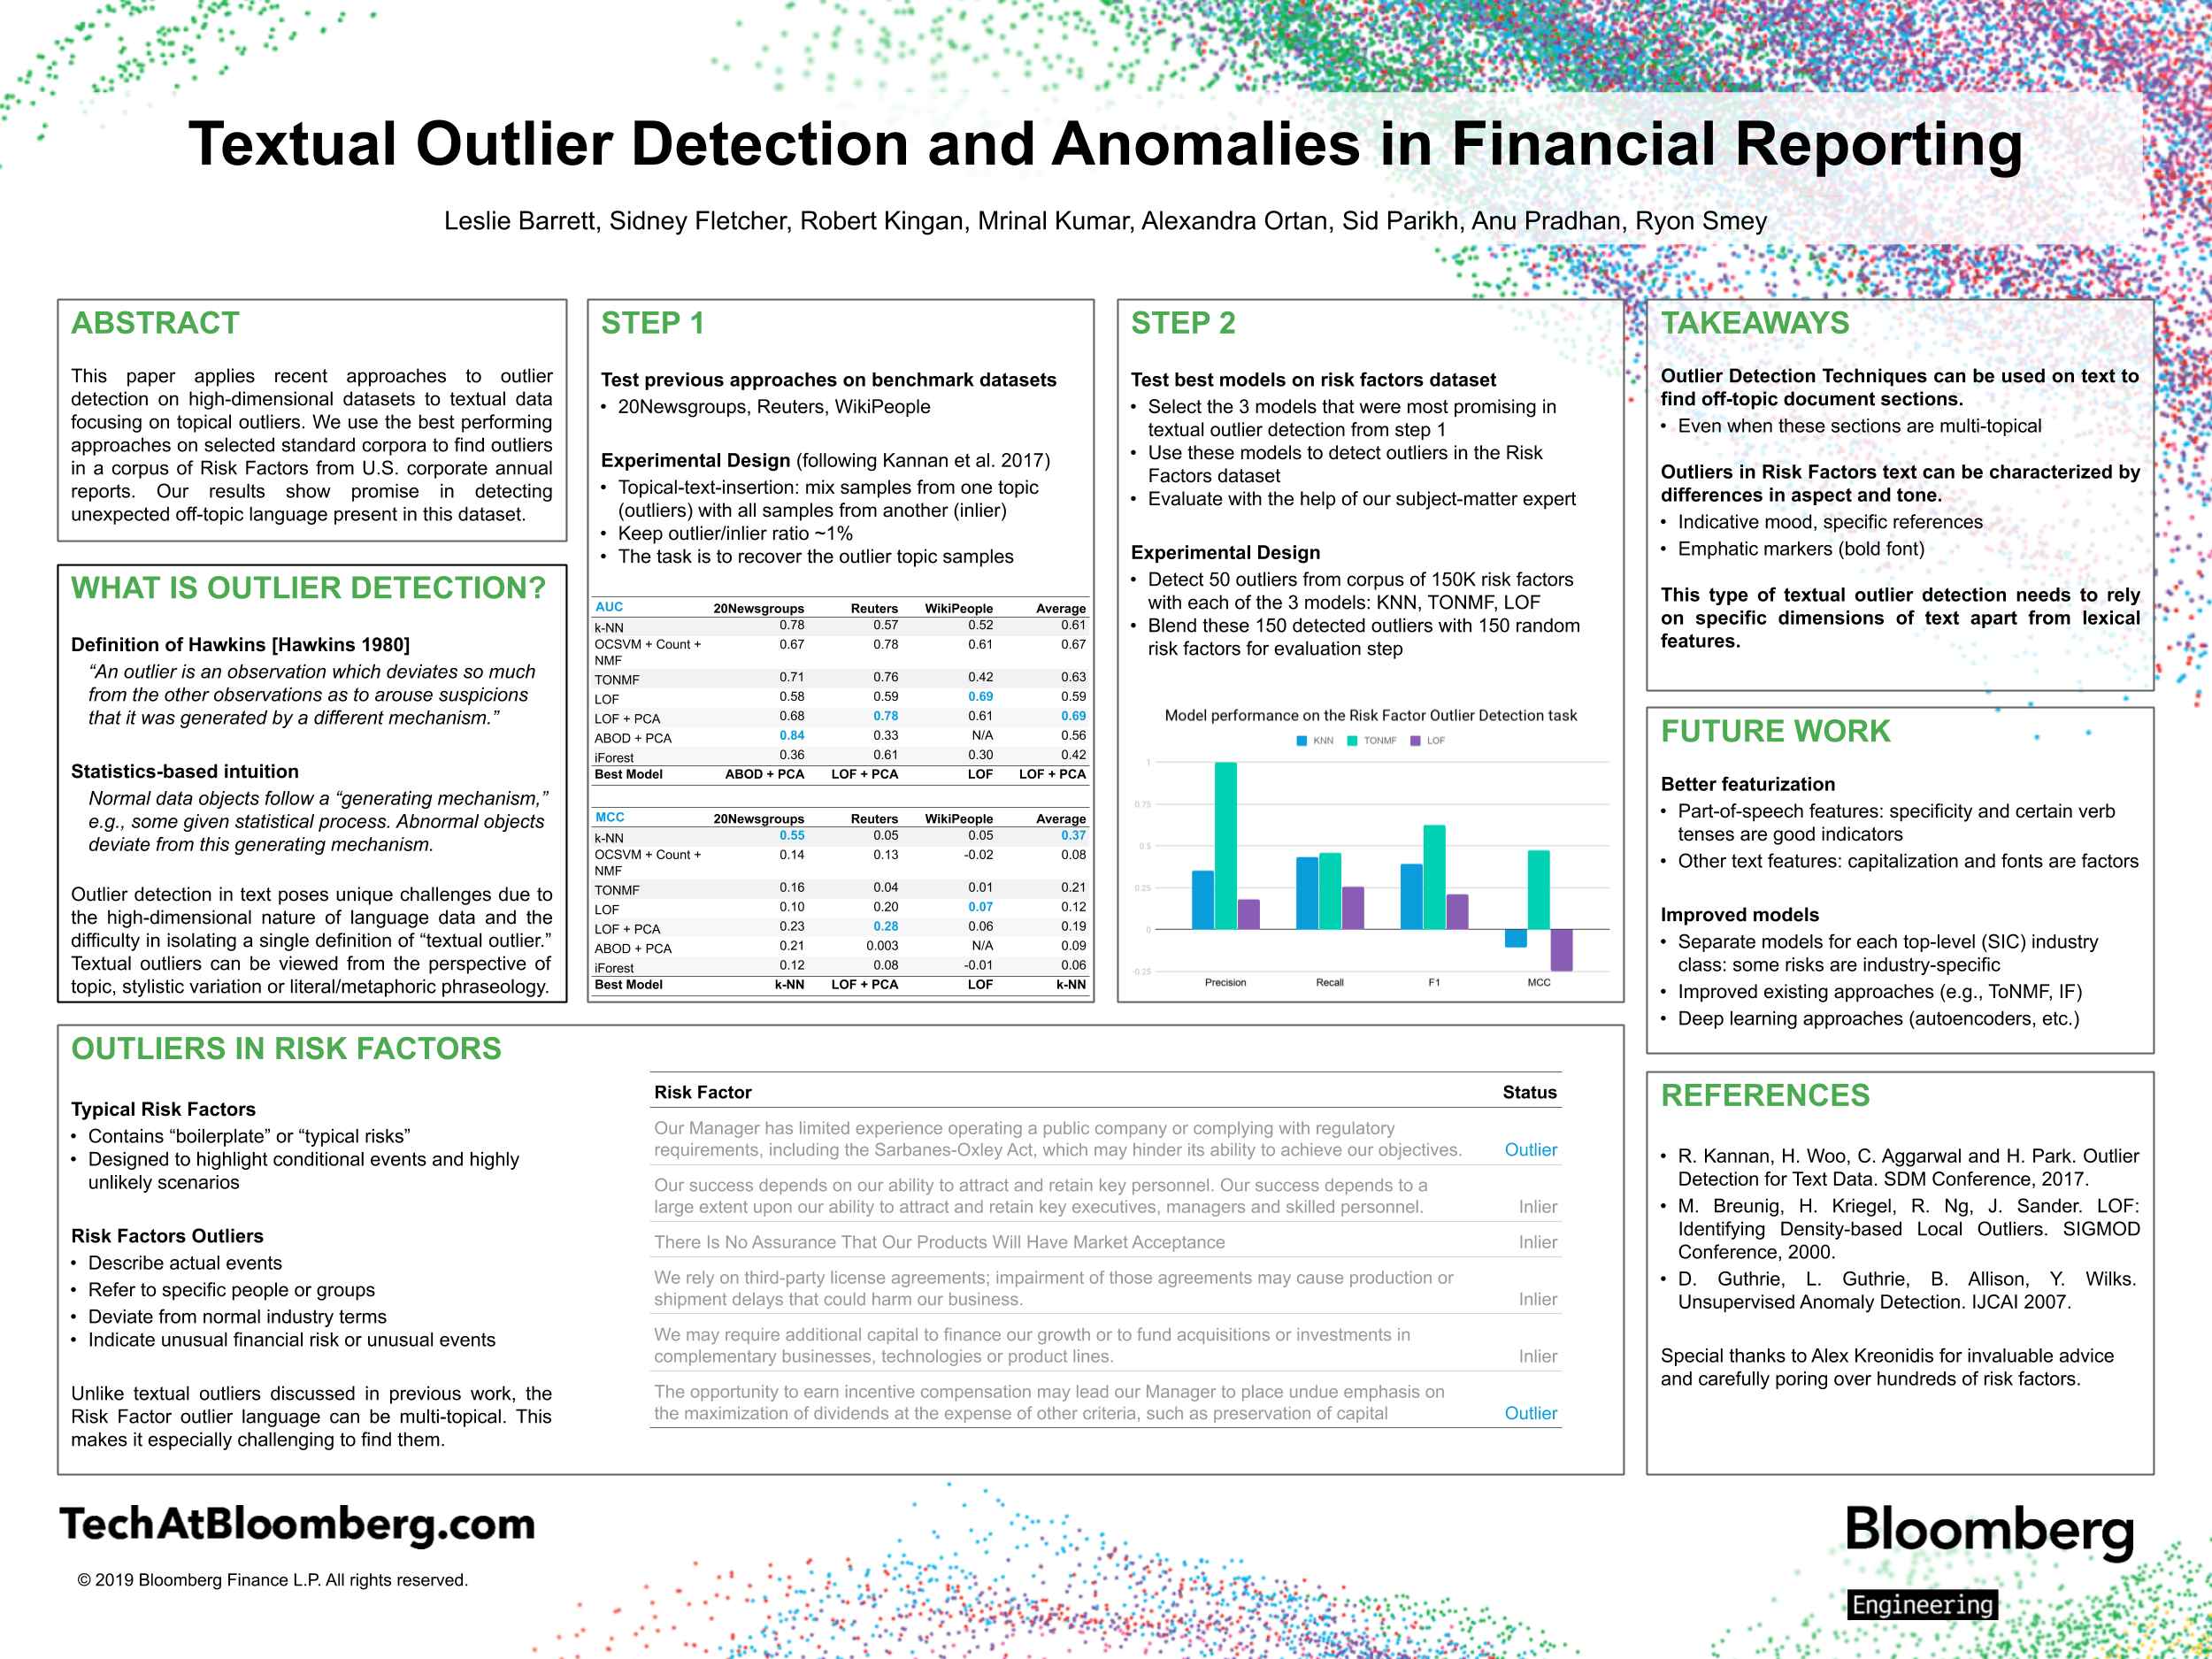 Bloomberg Researchers Present at the 2nd KDD Workshop on Anomaly